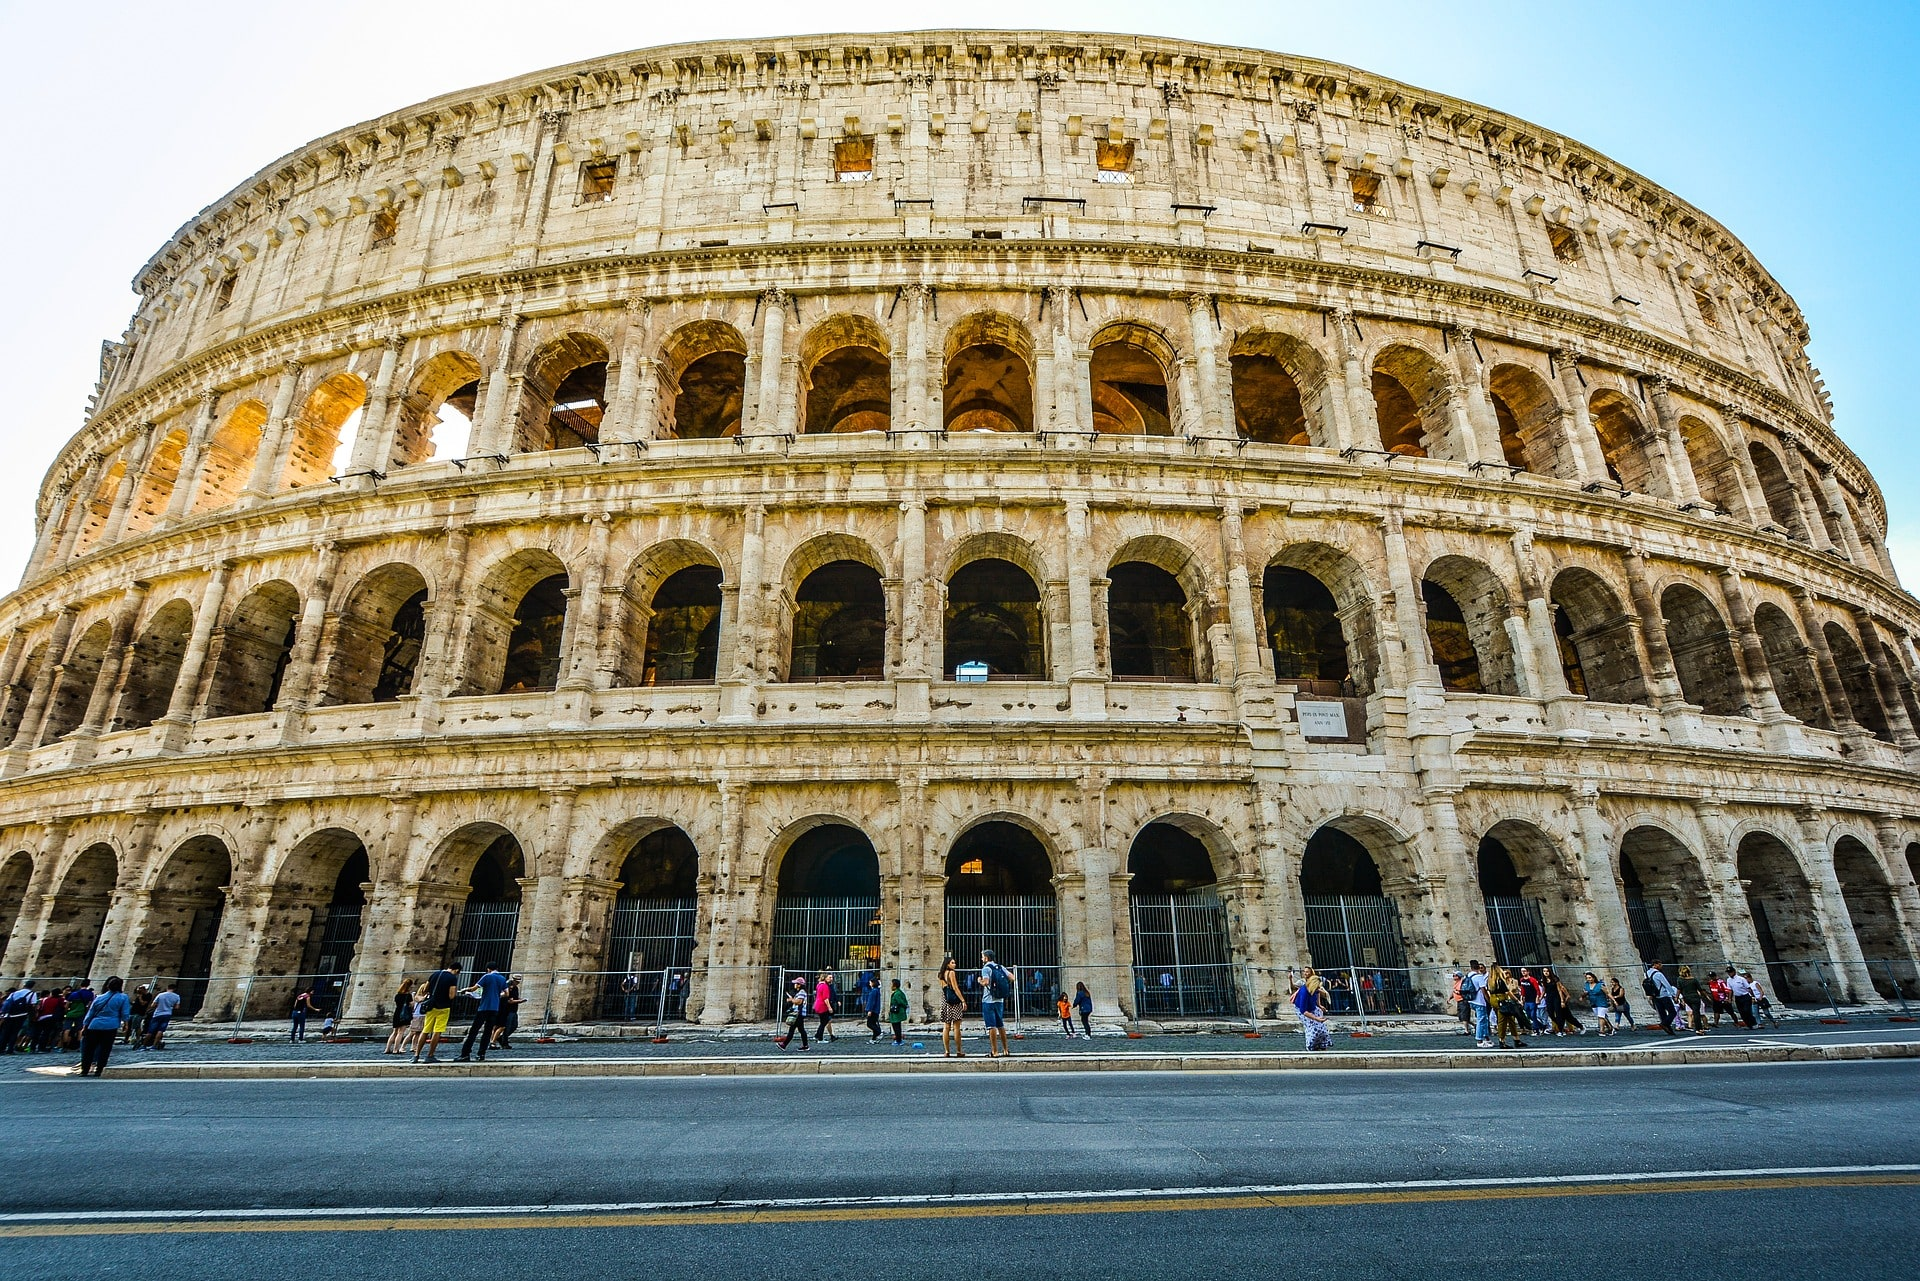 One of the biggest things to do in Italy is visit the awe-inspiring Colosseum